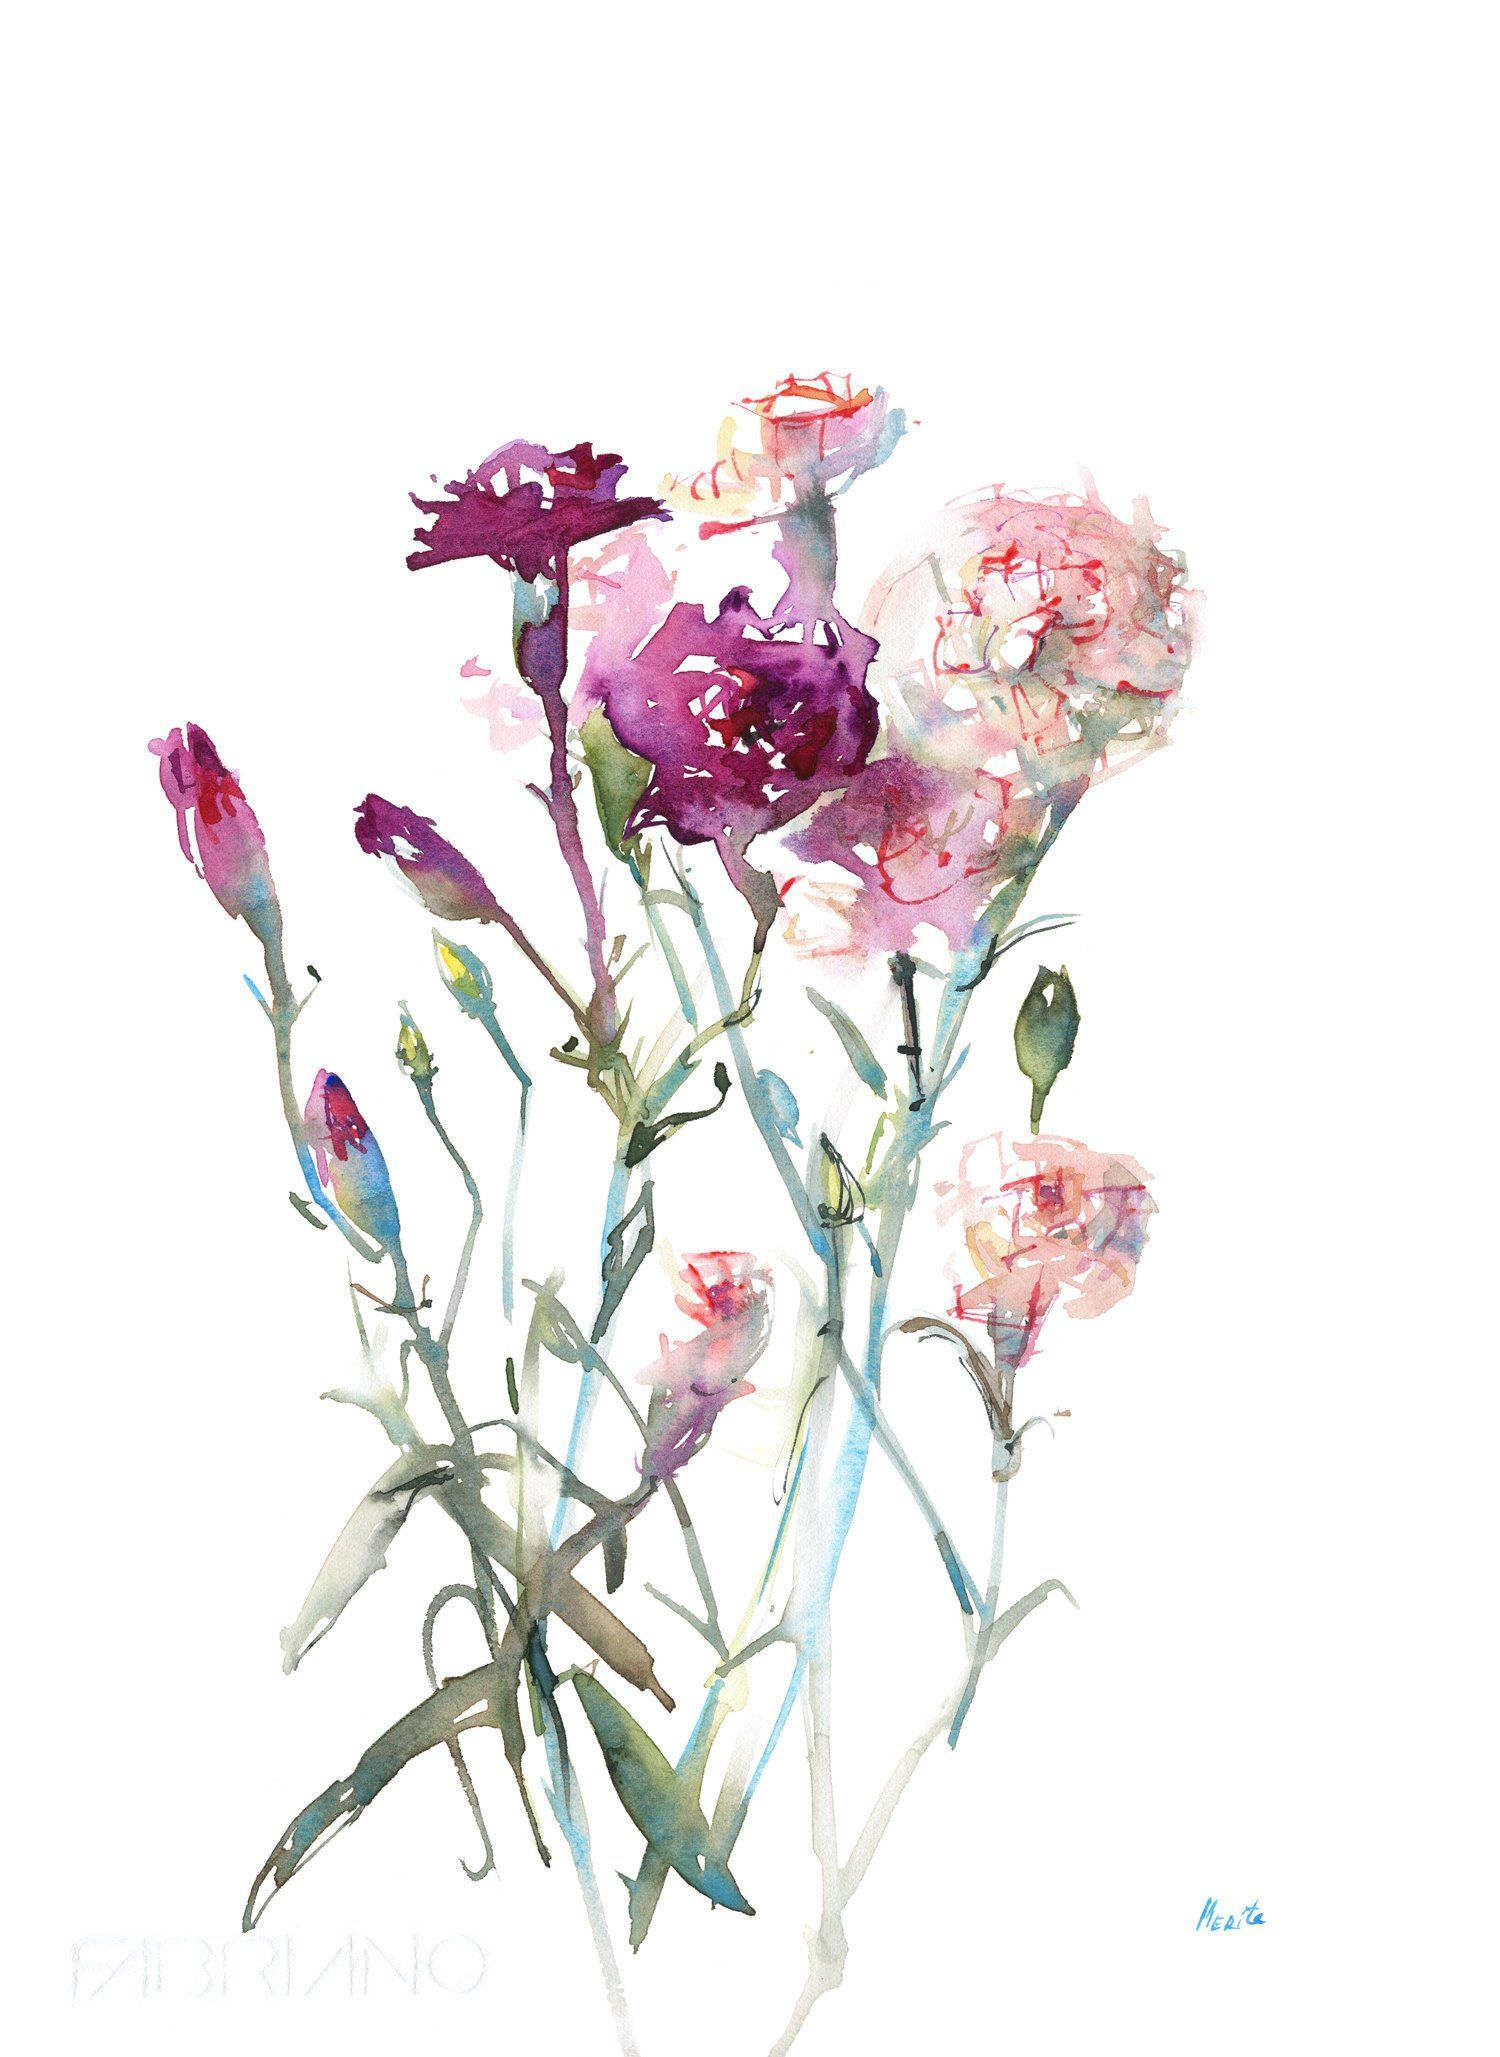 Print Of Carnations Flower Watercolor Illustration Spring Etsy Watercolor Flowers Paintings Watercolor Flowers Flower Illustration